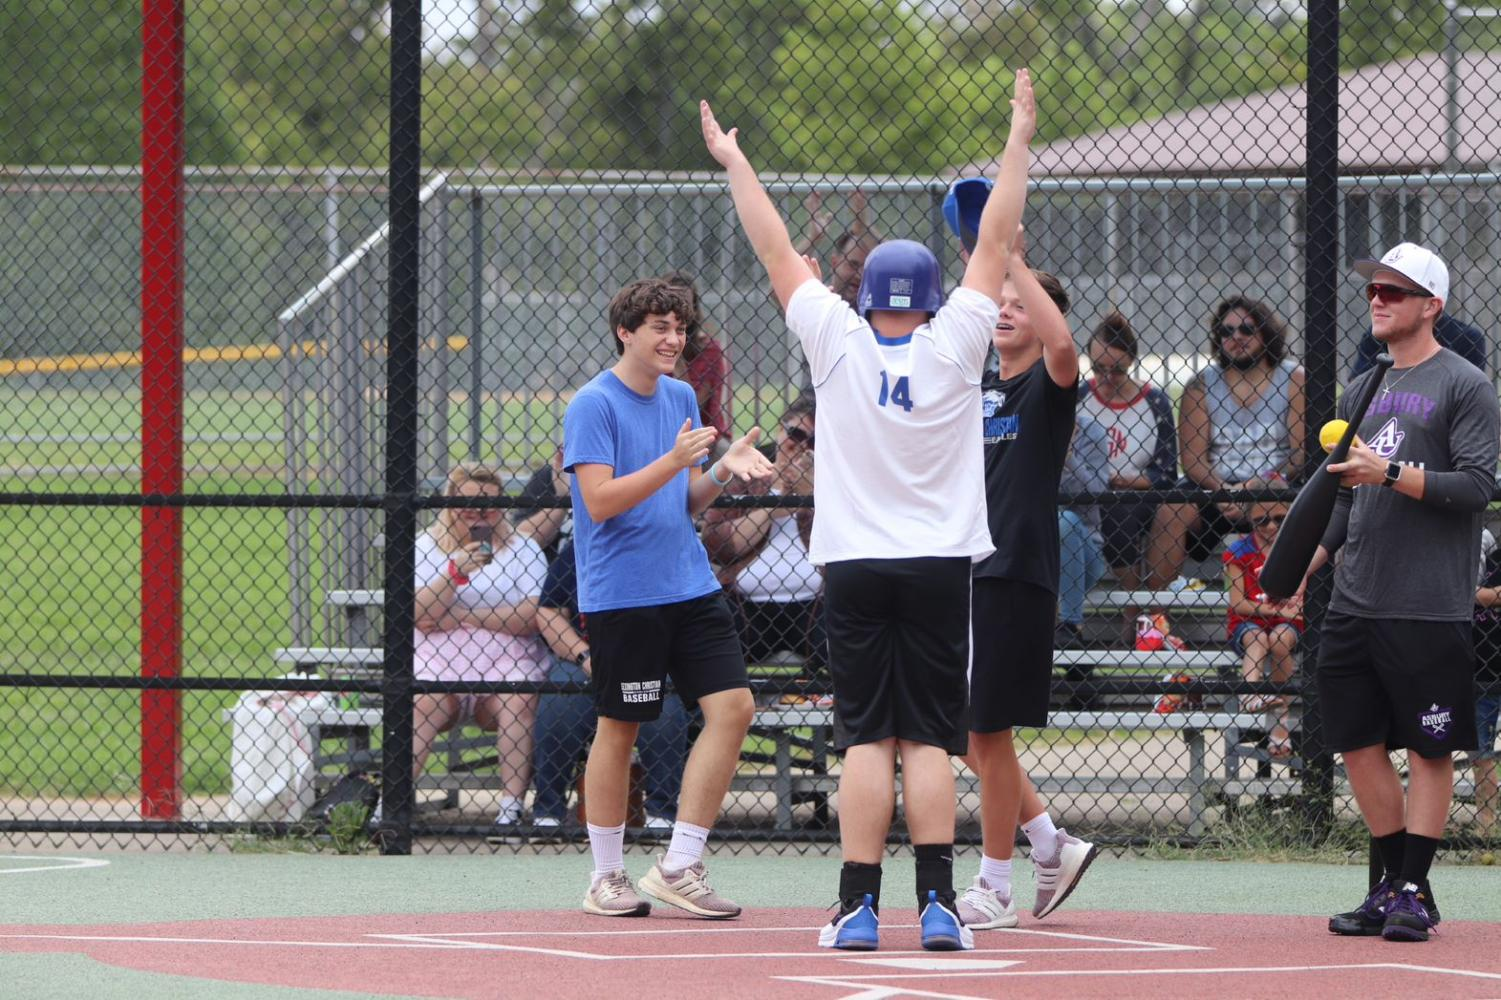 Mac Crosbie, 10, and Matthew Maggard, 10, cheer for a Miracle League player has he crosses home plate.